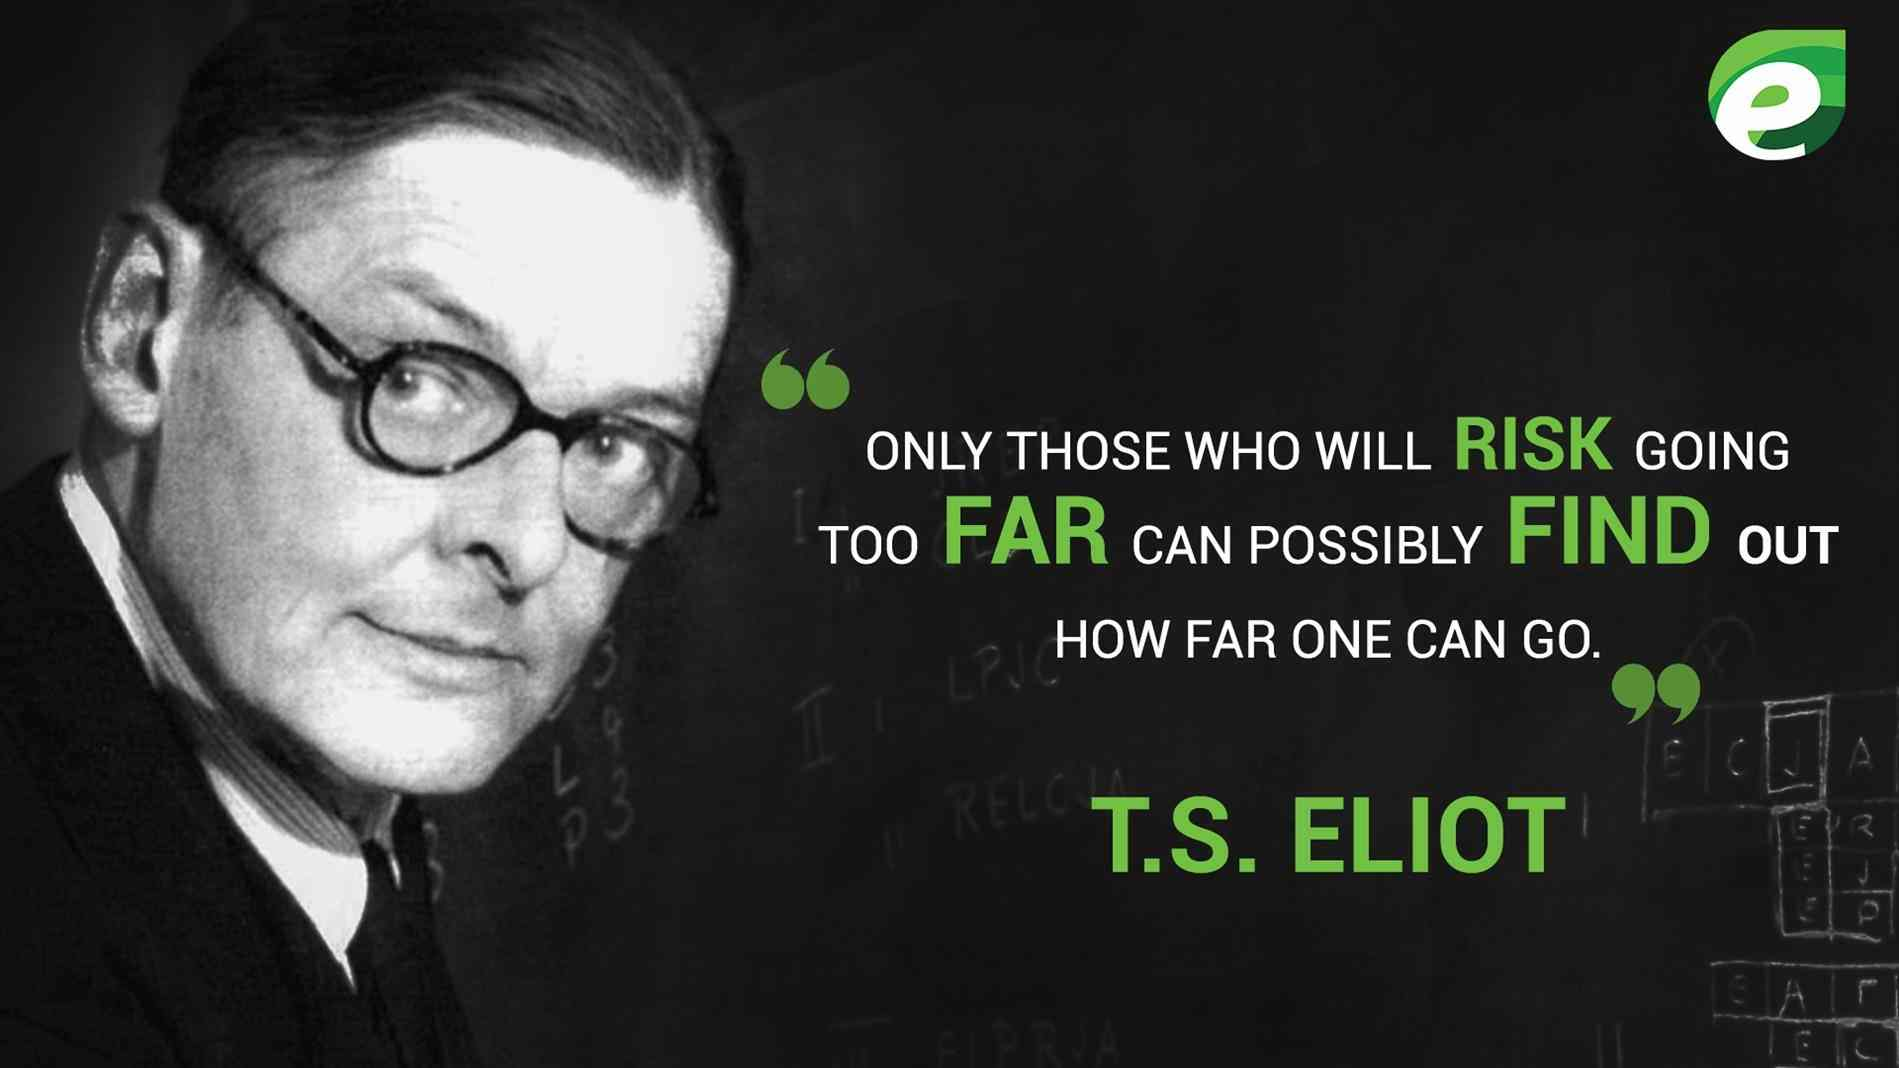 ONLY THOSE WHO WILL RISK GOING TOO FAR CAN POSSIBLY FIND OUT HOW FAR ONE CAN GO. 99 v: . T.S. ELIOT https://inspirational.ly